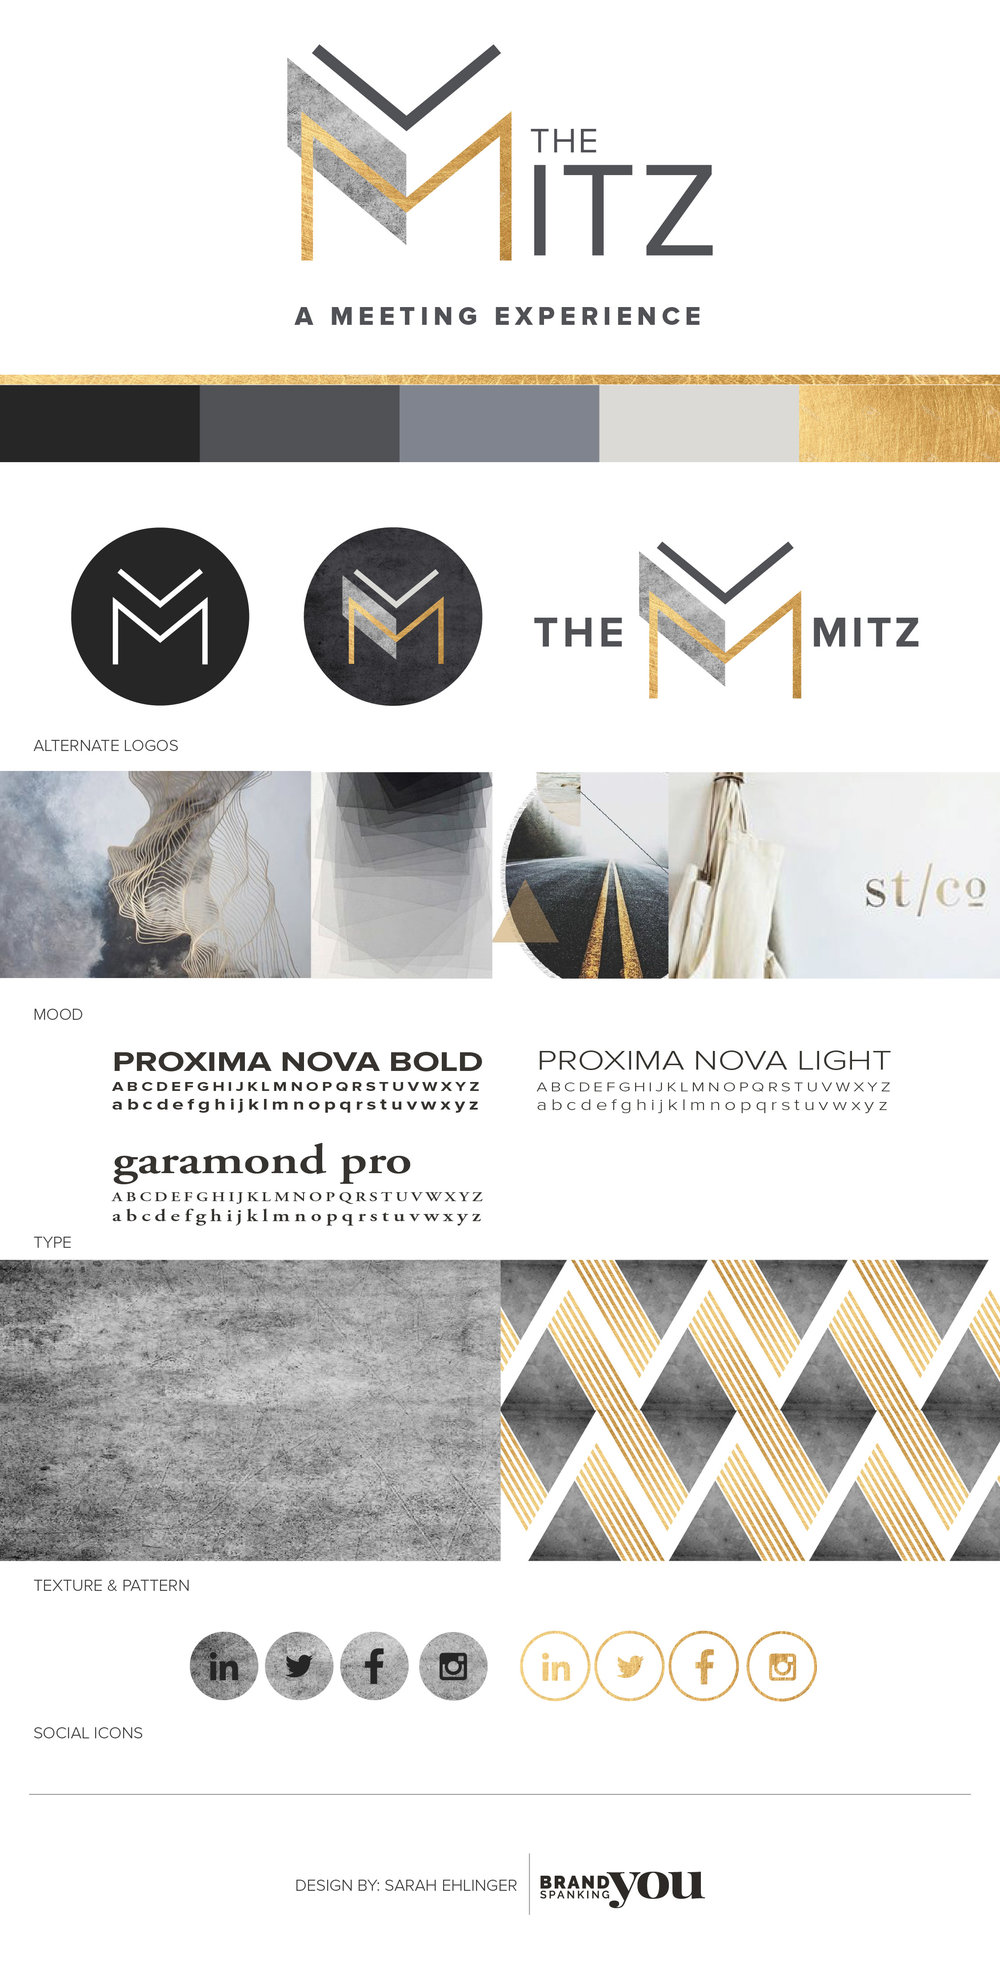 Brand Identity style board for The Mitz. Designed by Sarah Ehlinger   Brand Spanking You